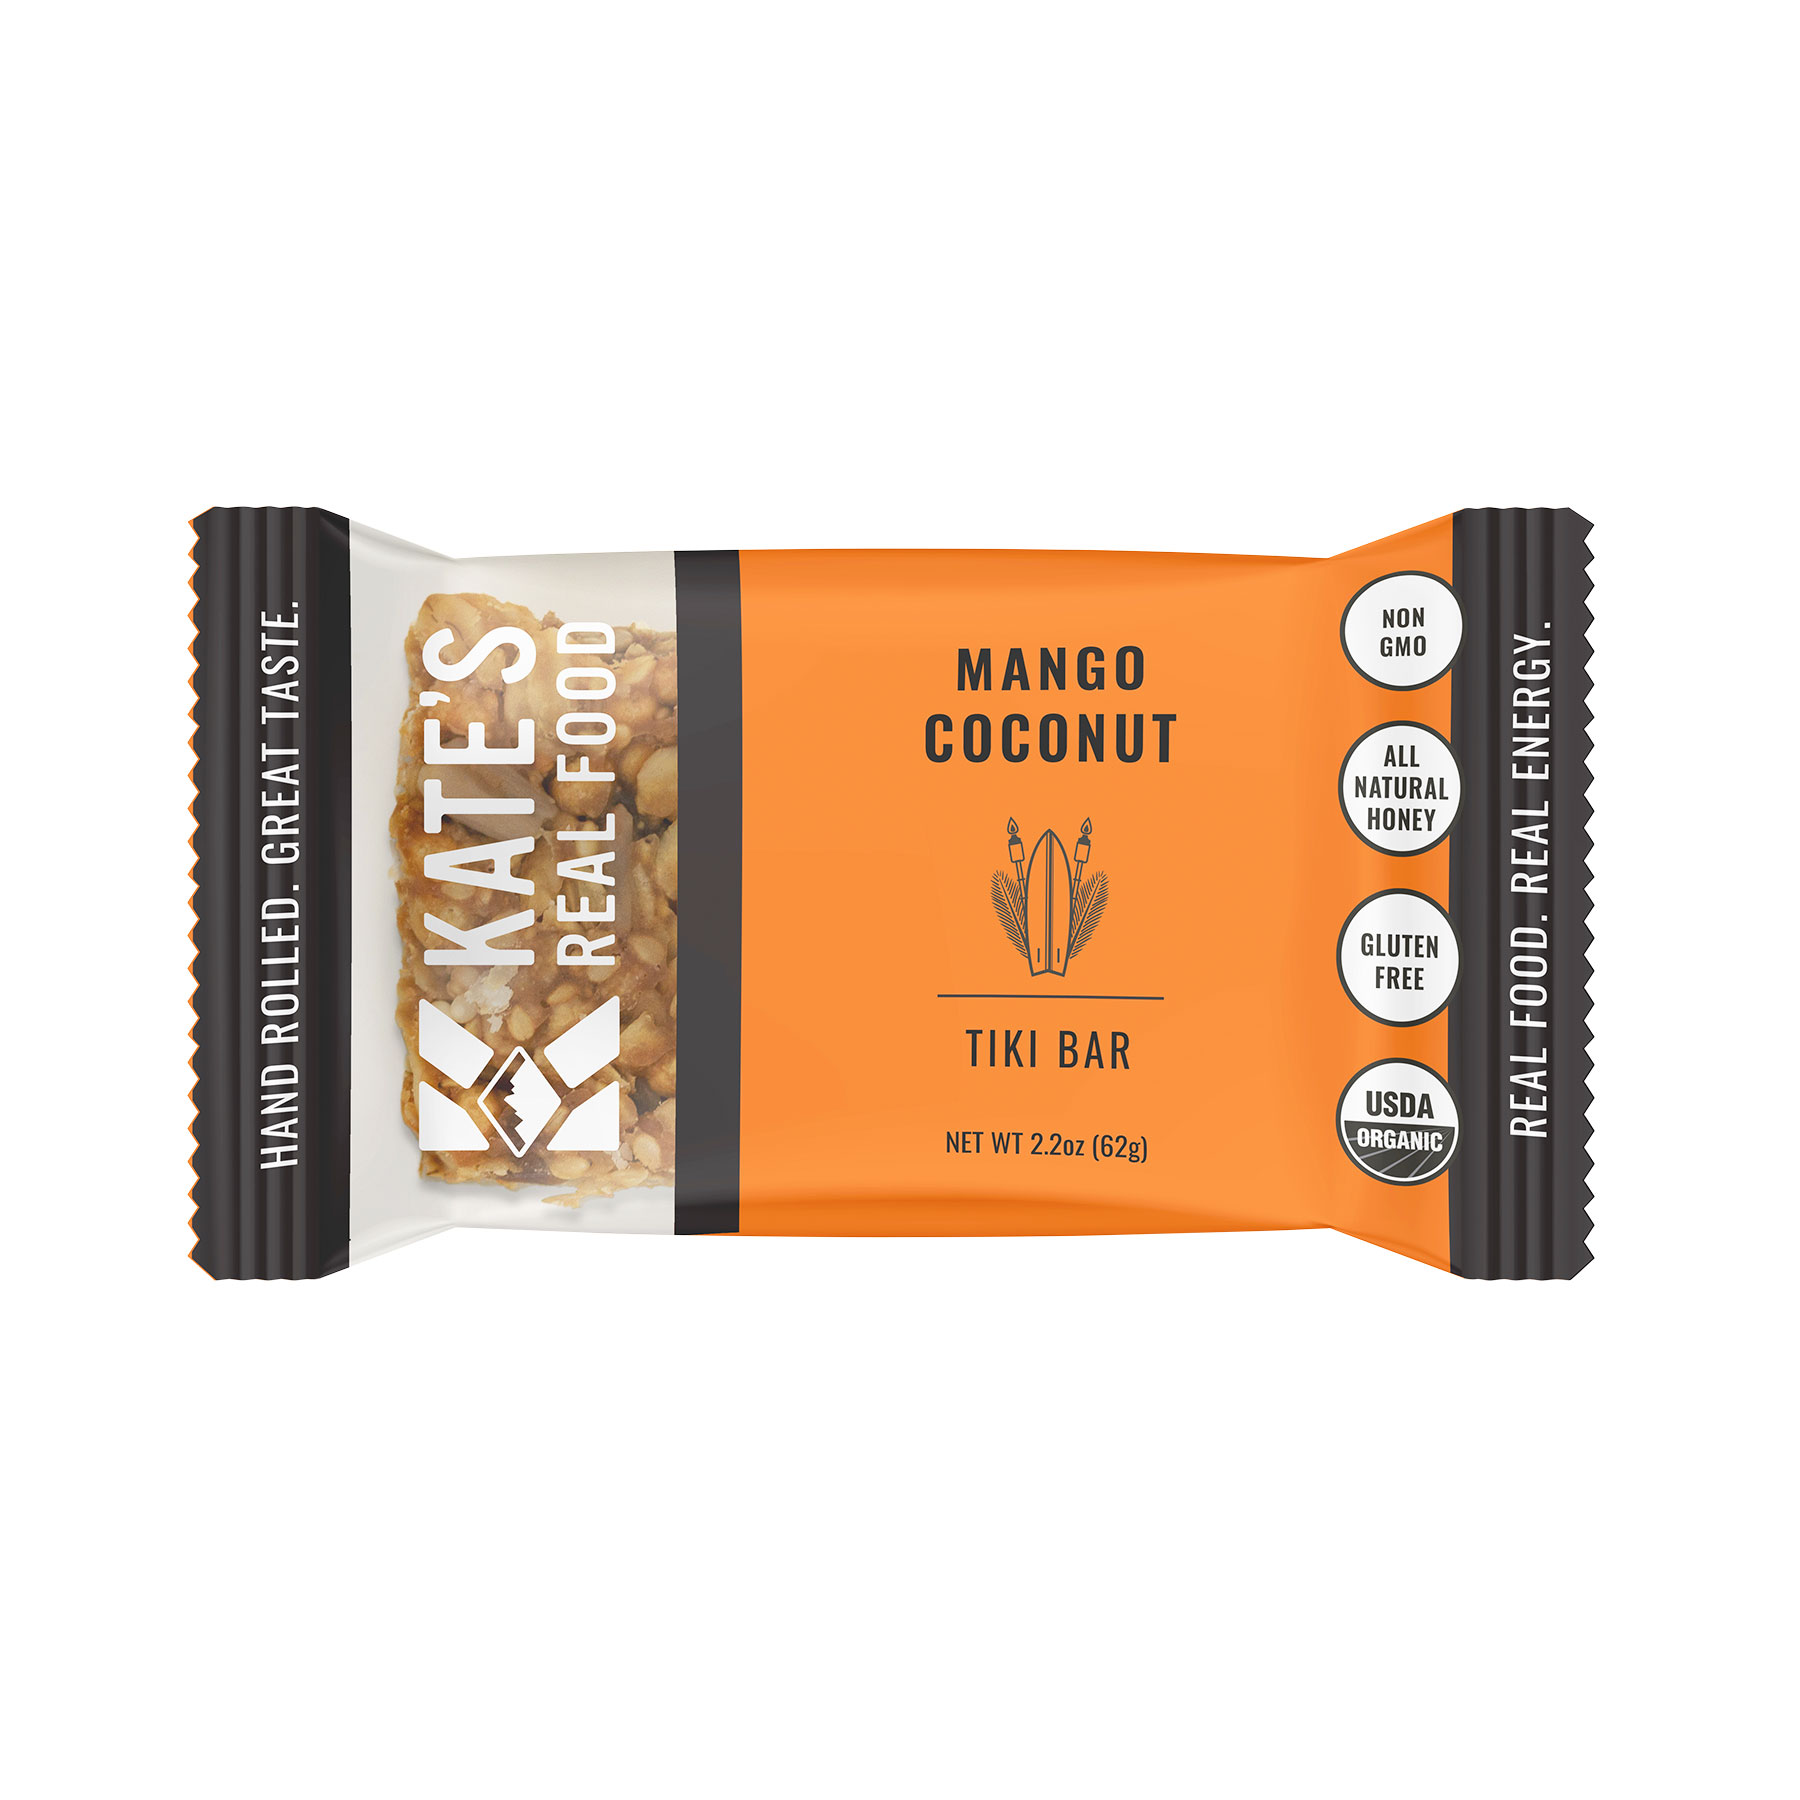 Best Snack Bars: Kate's Real Food Tiki Bar Mango & Coconut